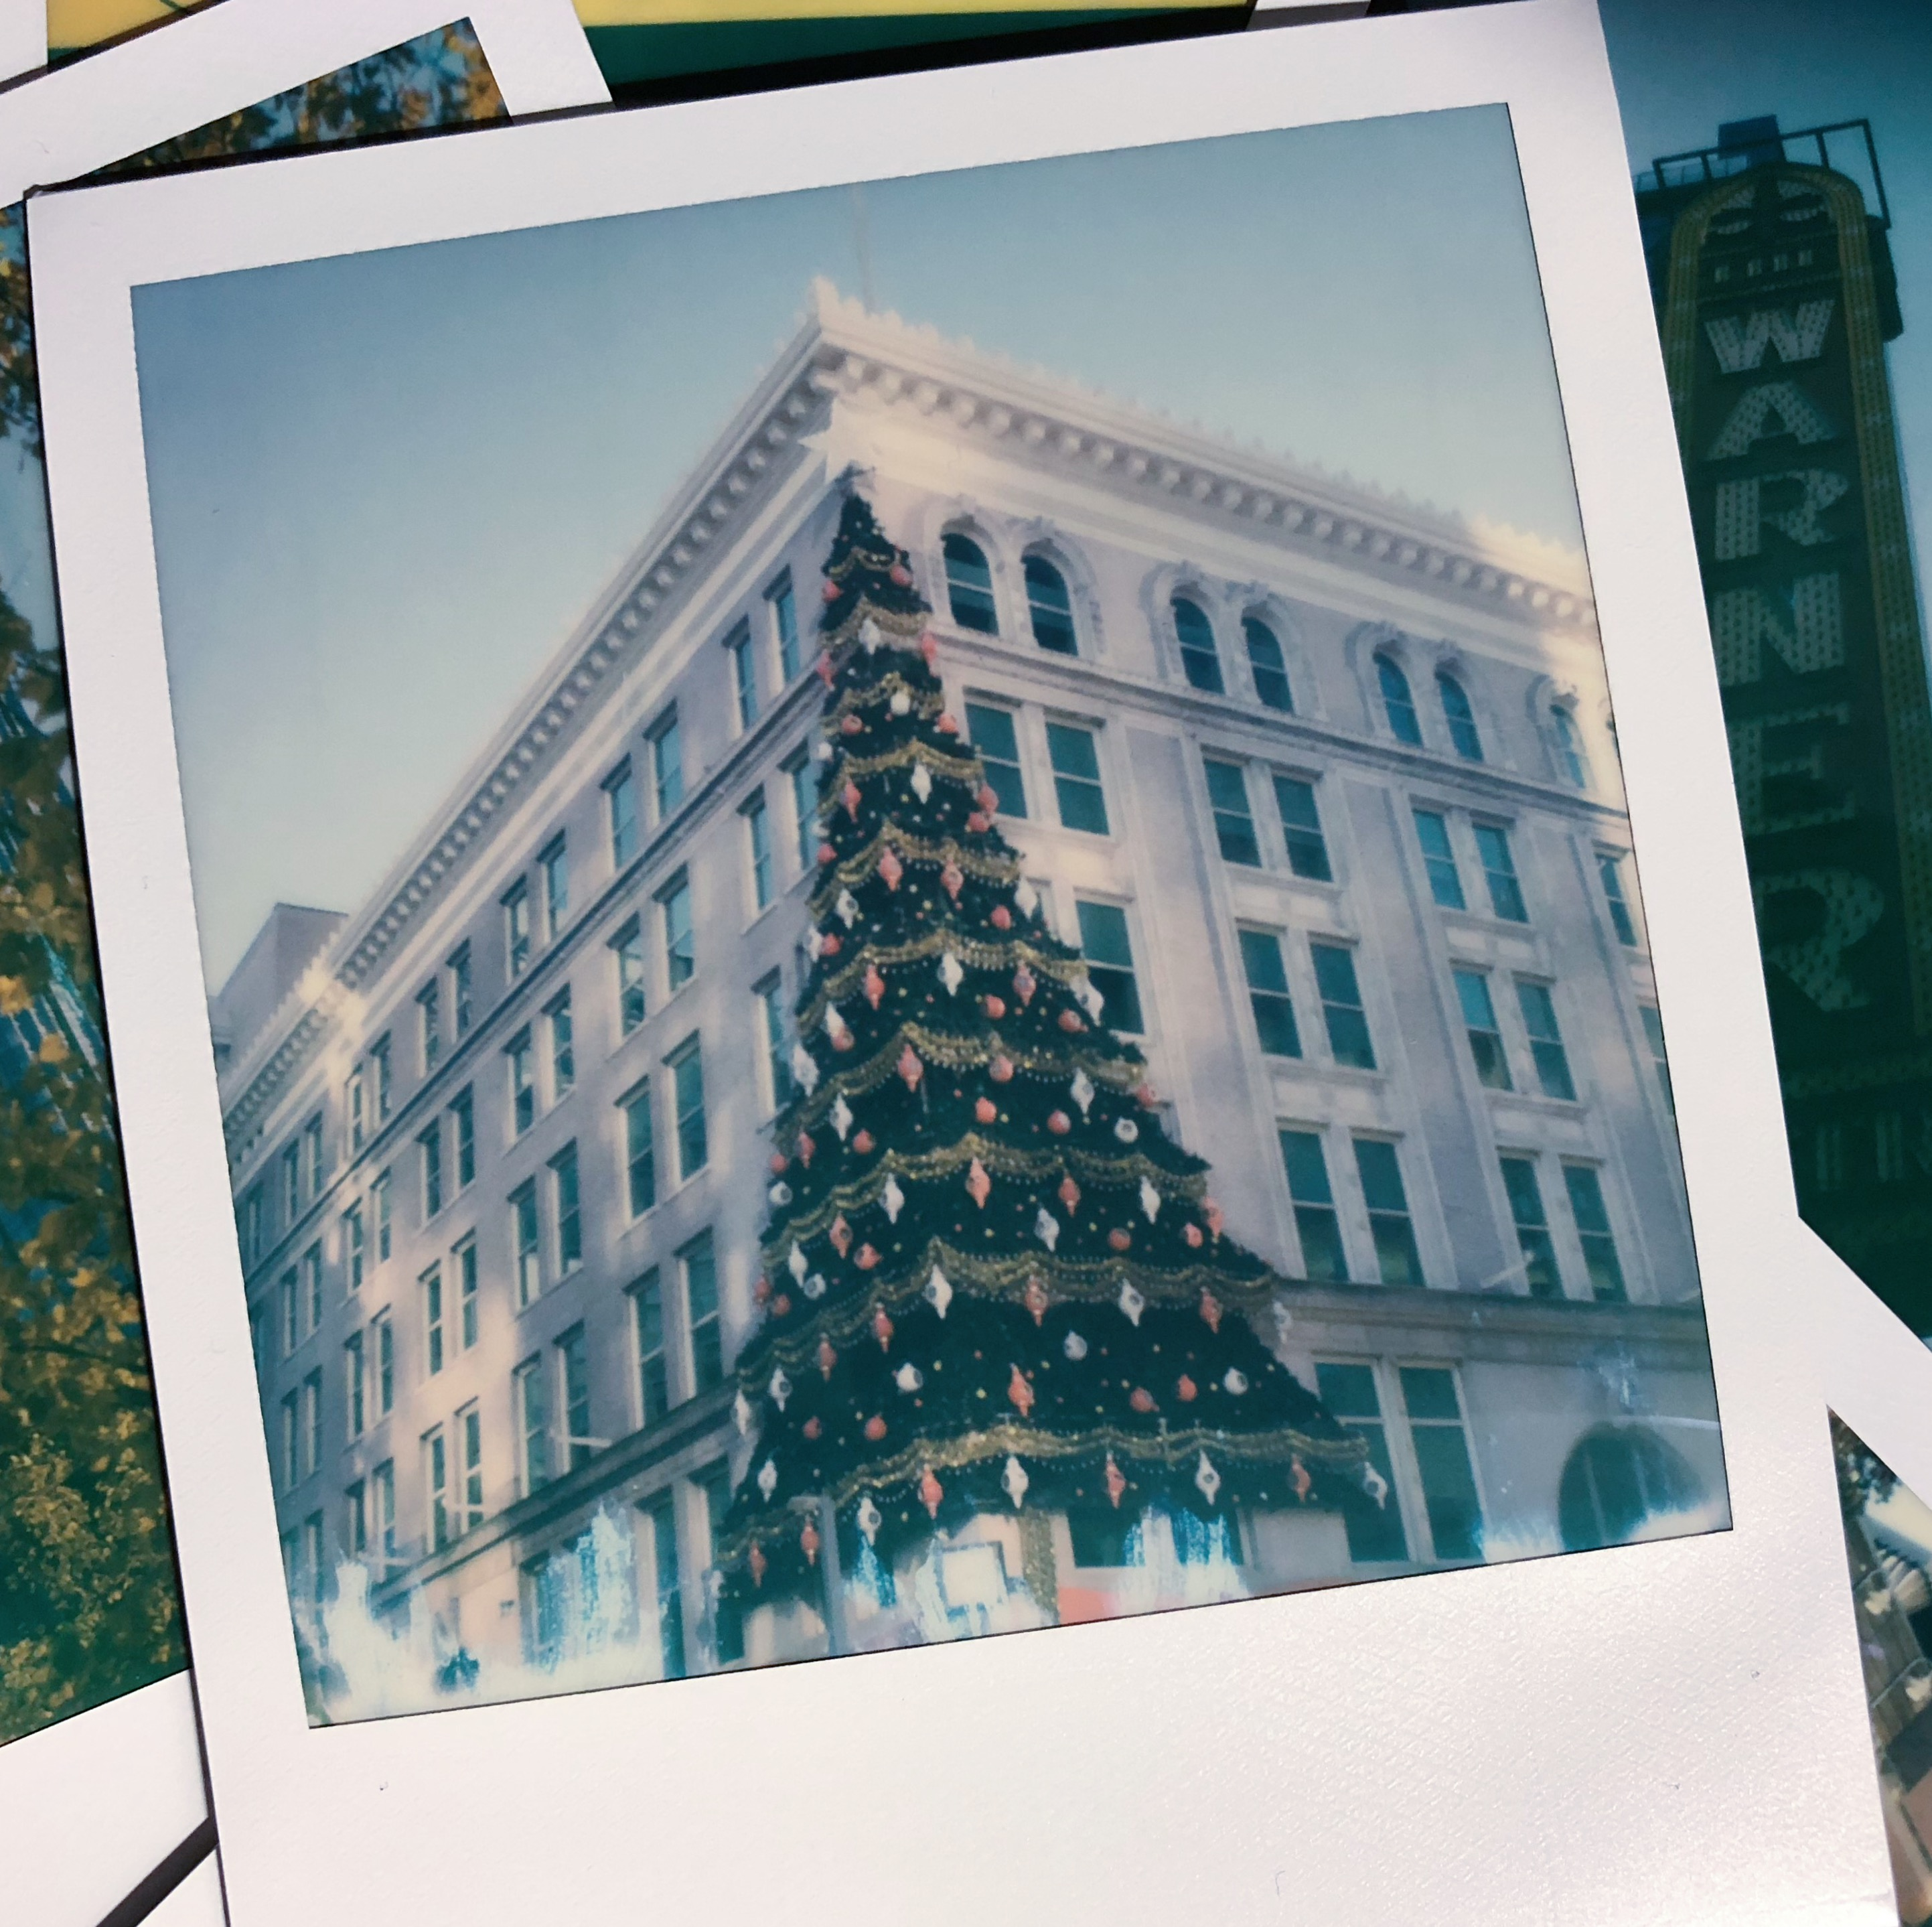 Polaroid, SX-70, land camera, fine art, pittsburgh, christmas